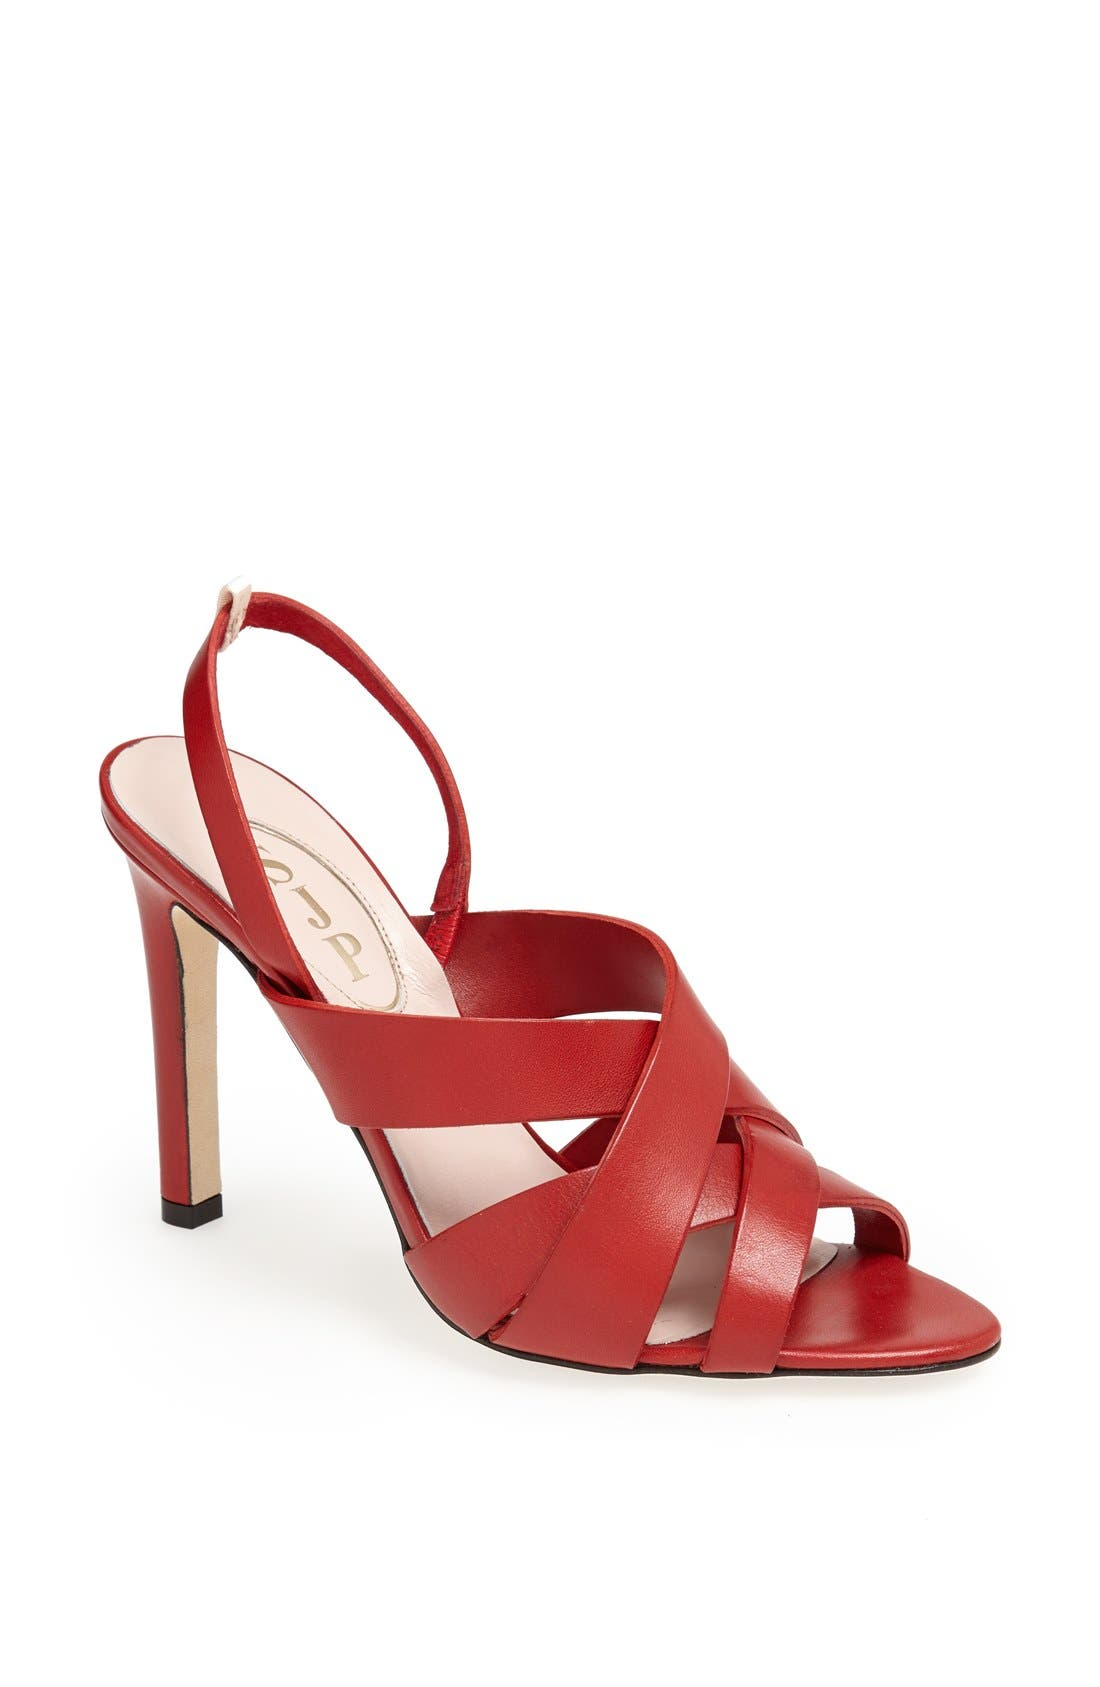 Alternate Image 1 Selected - SJP 'Stella' Sandal (Nordstrom Exclusive)